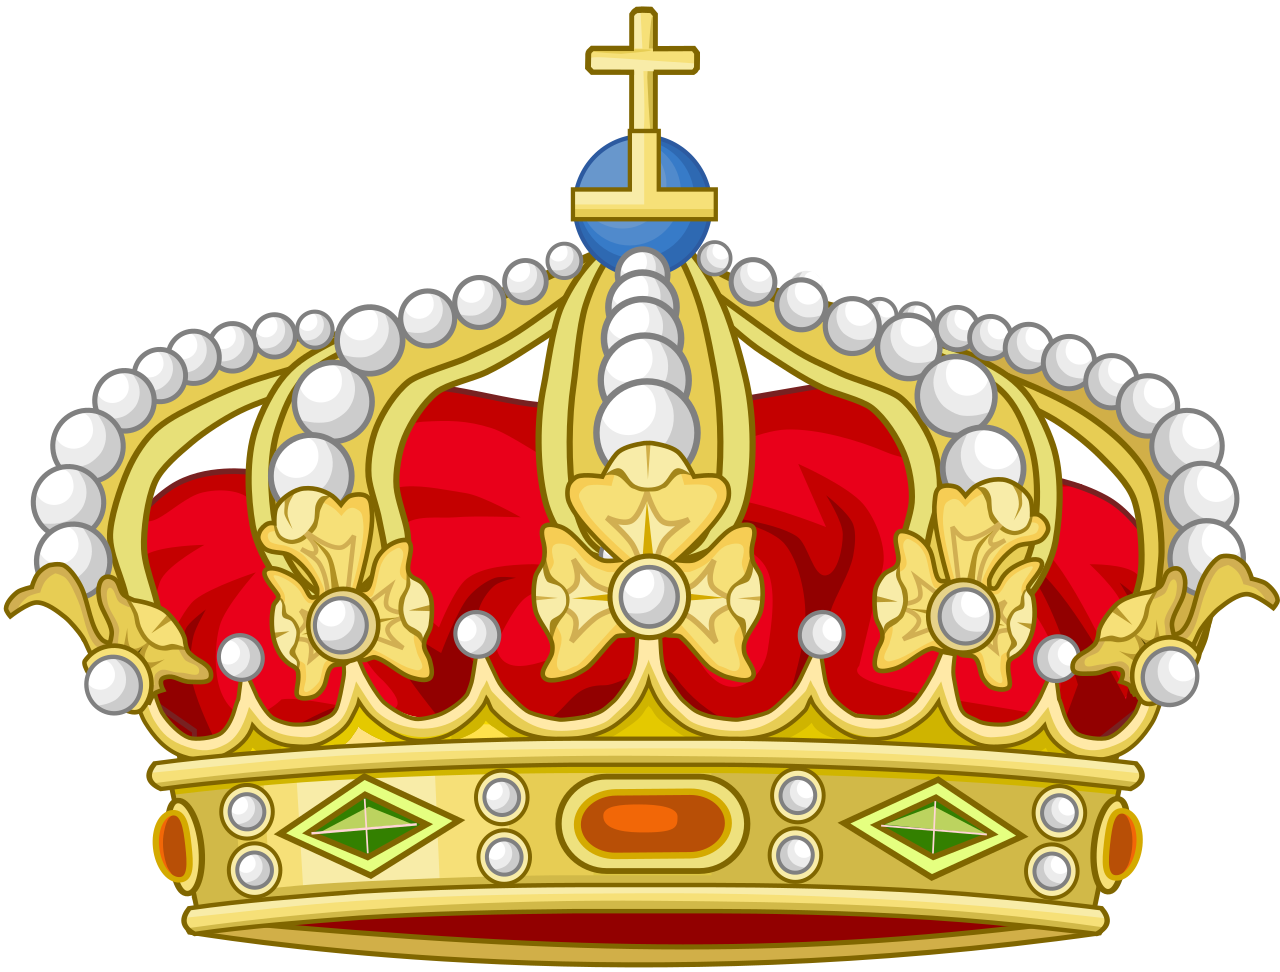 King clipart absolutism, King absolutism Transparent FREE for ... png freeuse library